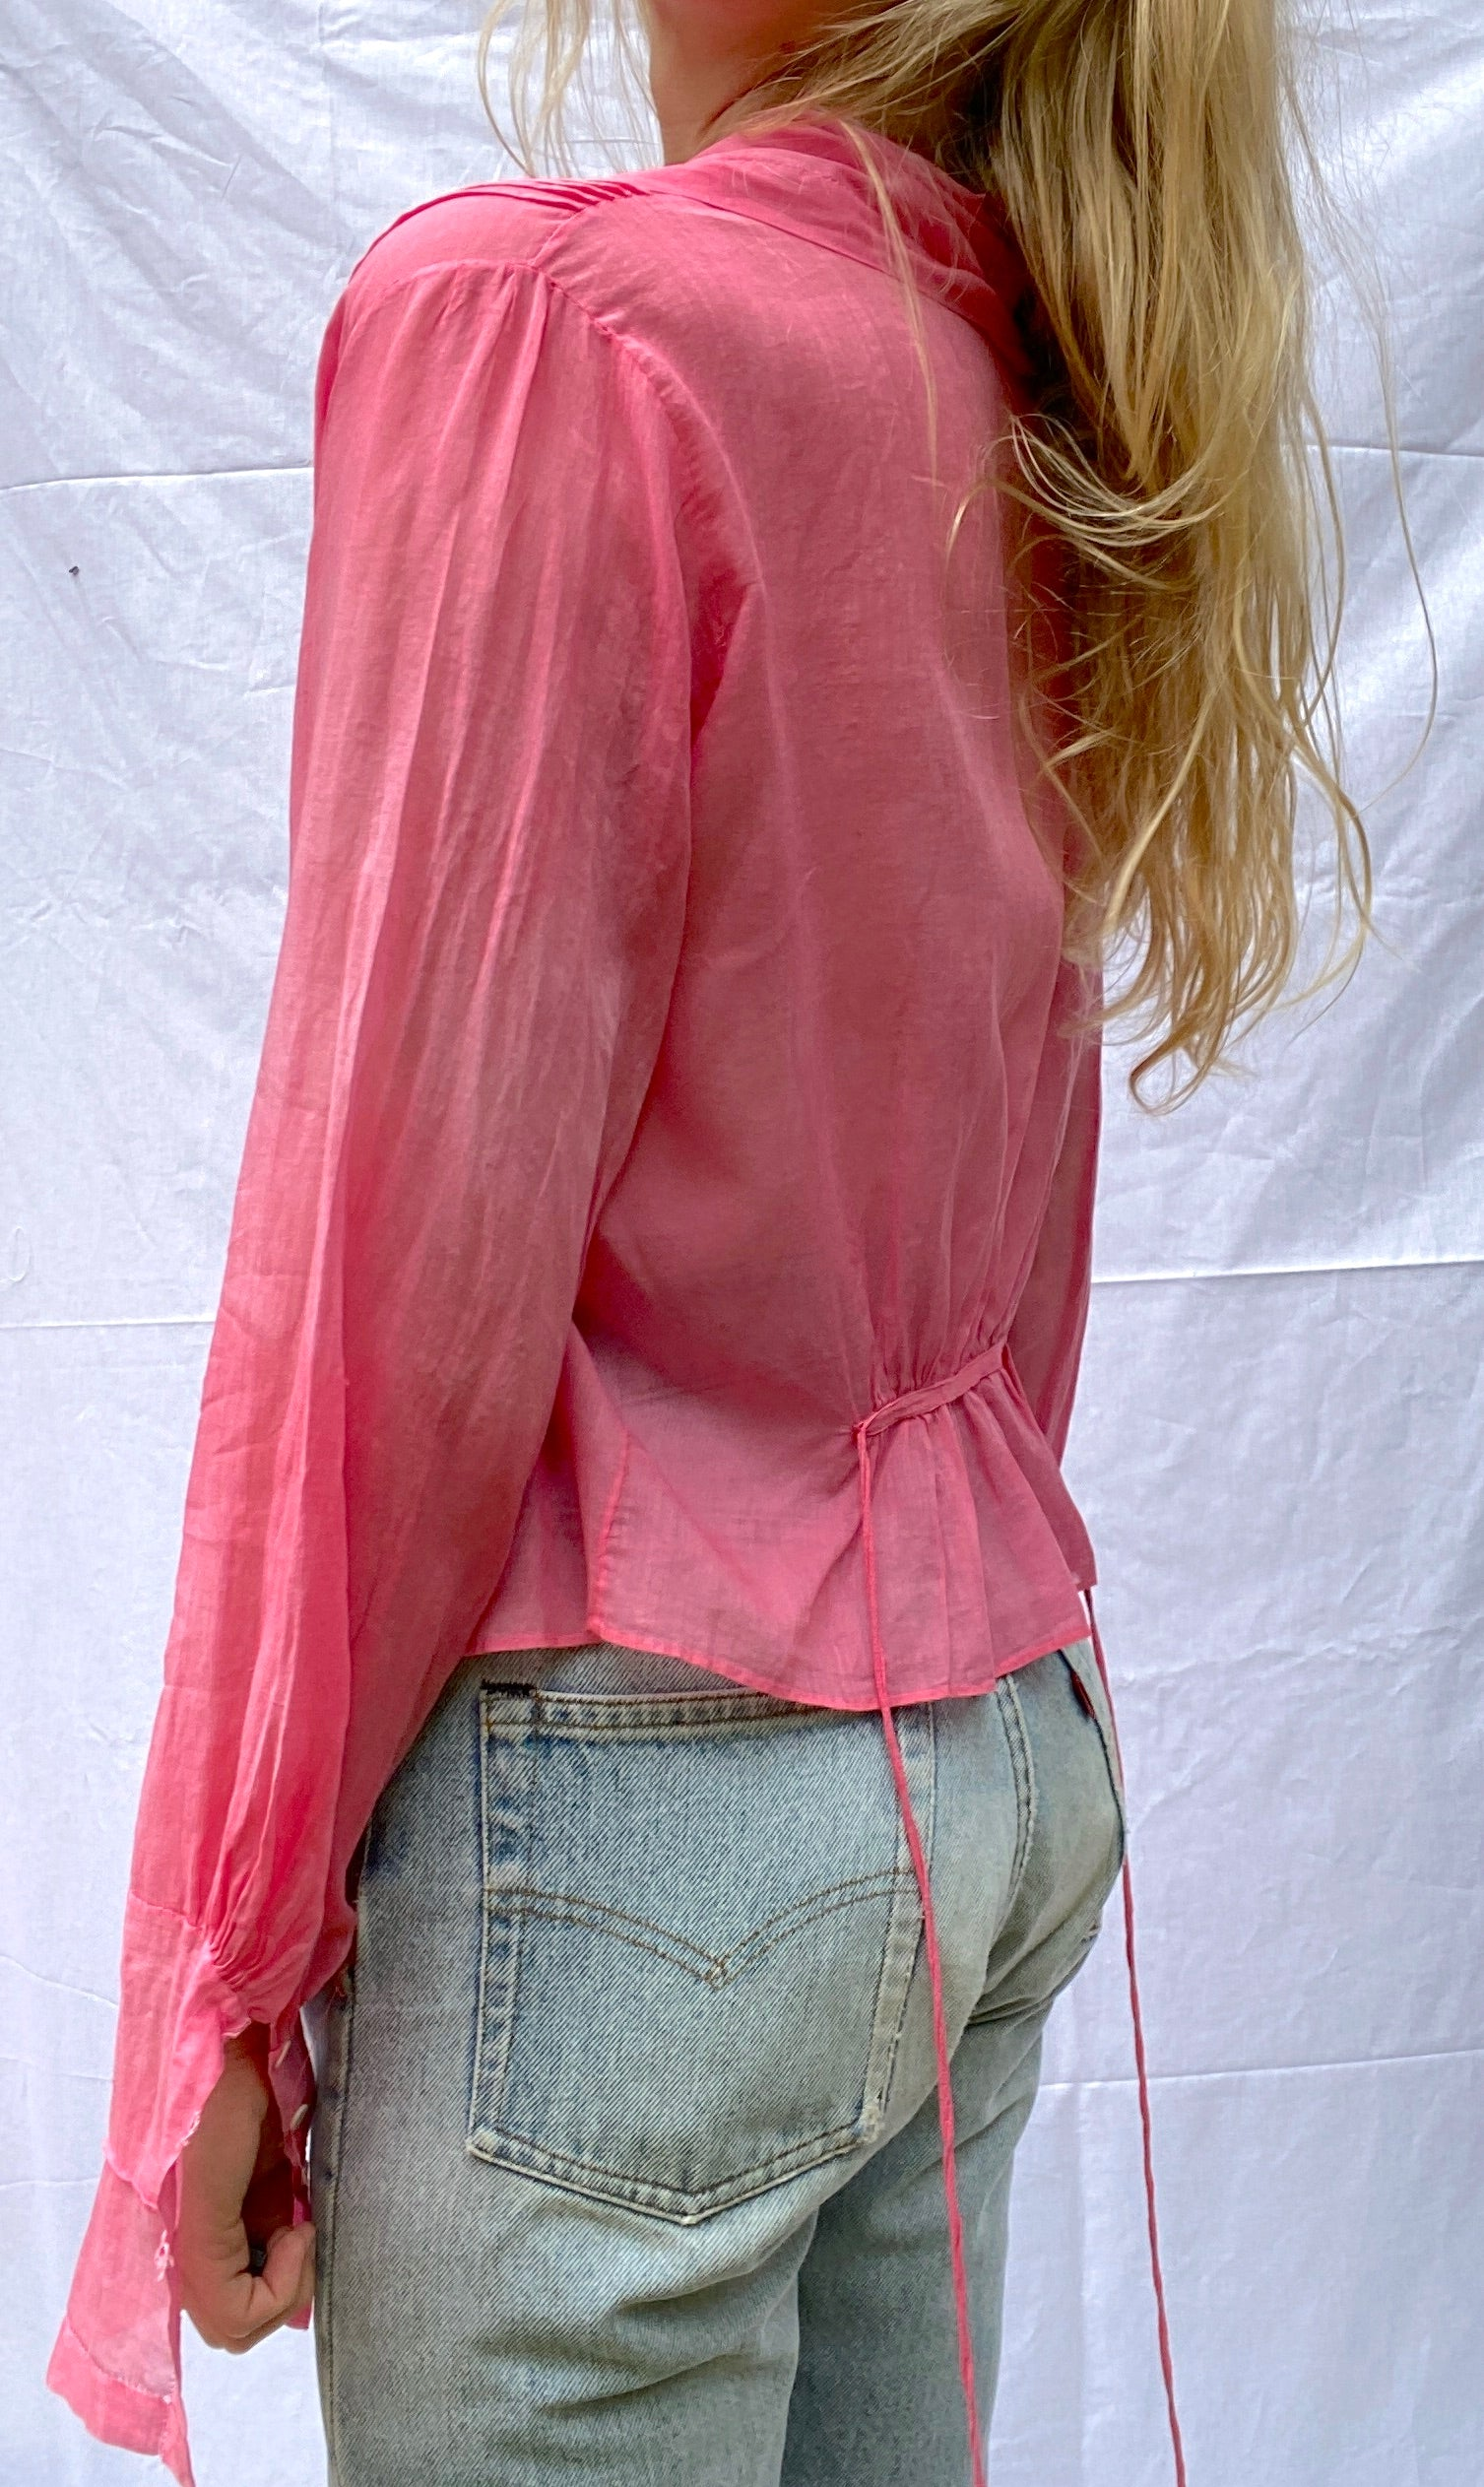 Hand Dyed Cotton Voile Victorian Blouse